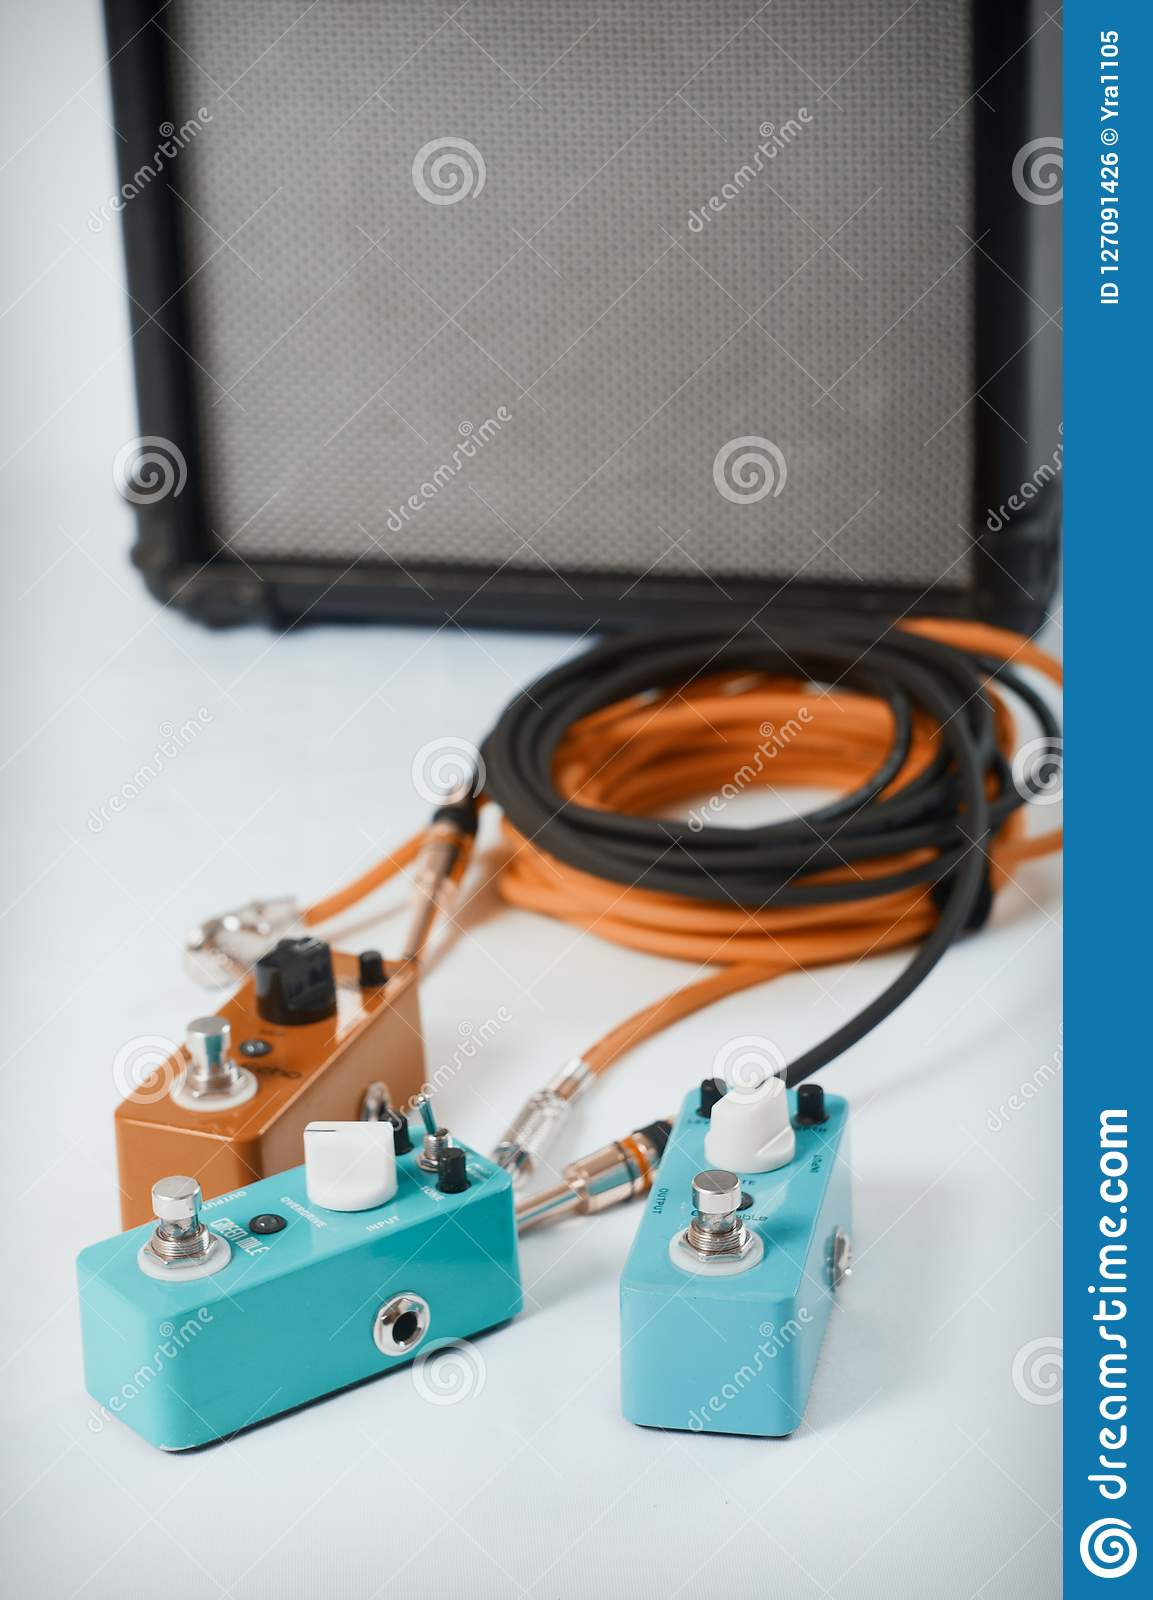 hight resolution of electric guitar stomp effectors and cables in studio focus is on forehand switch box